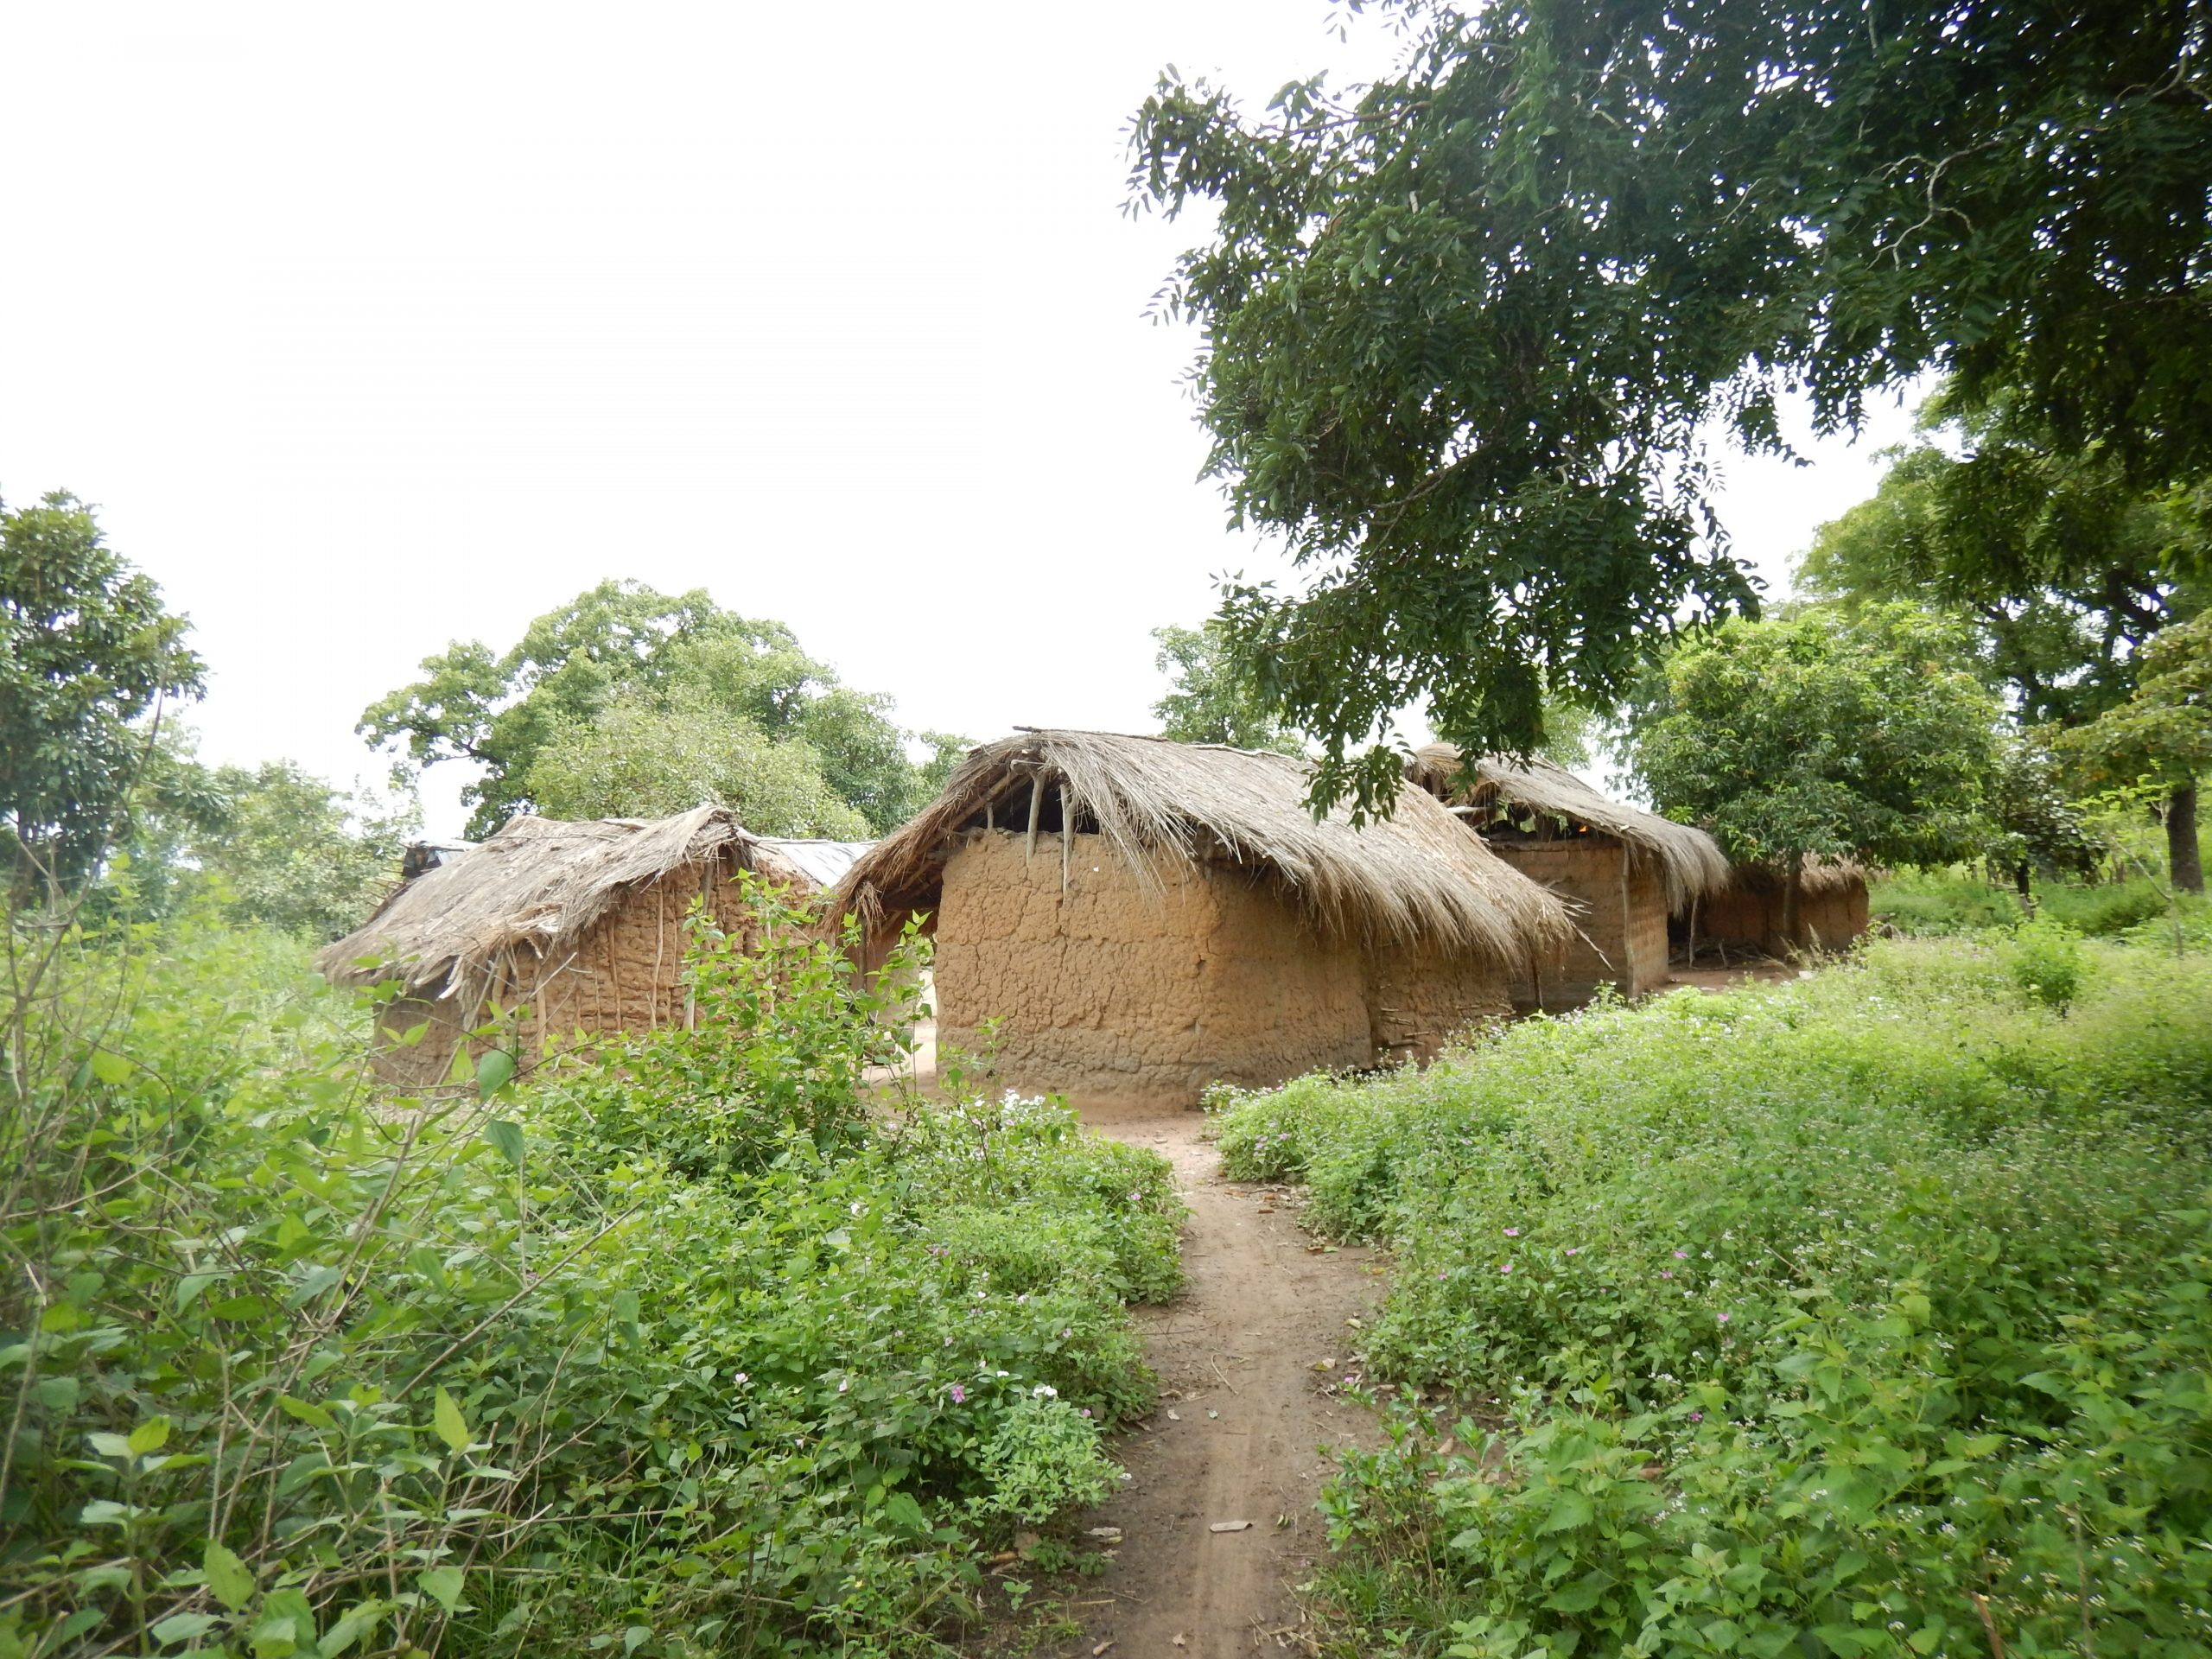 Dirt road leading to huts within green foliage